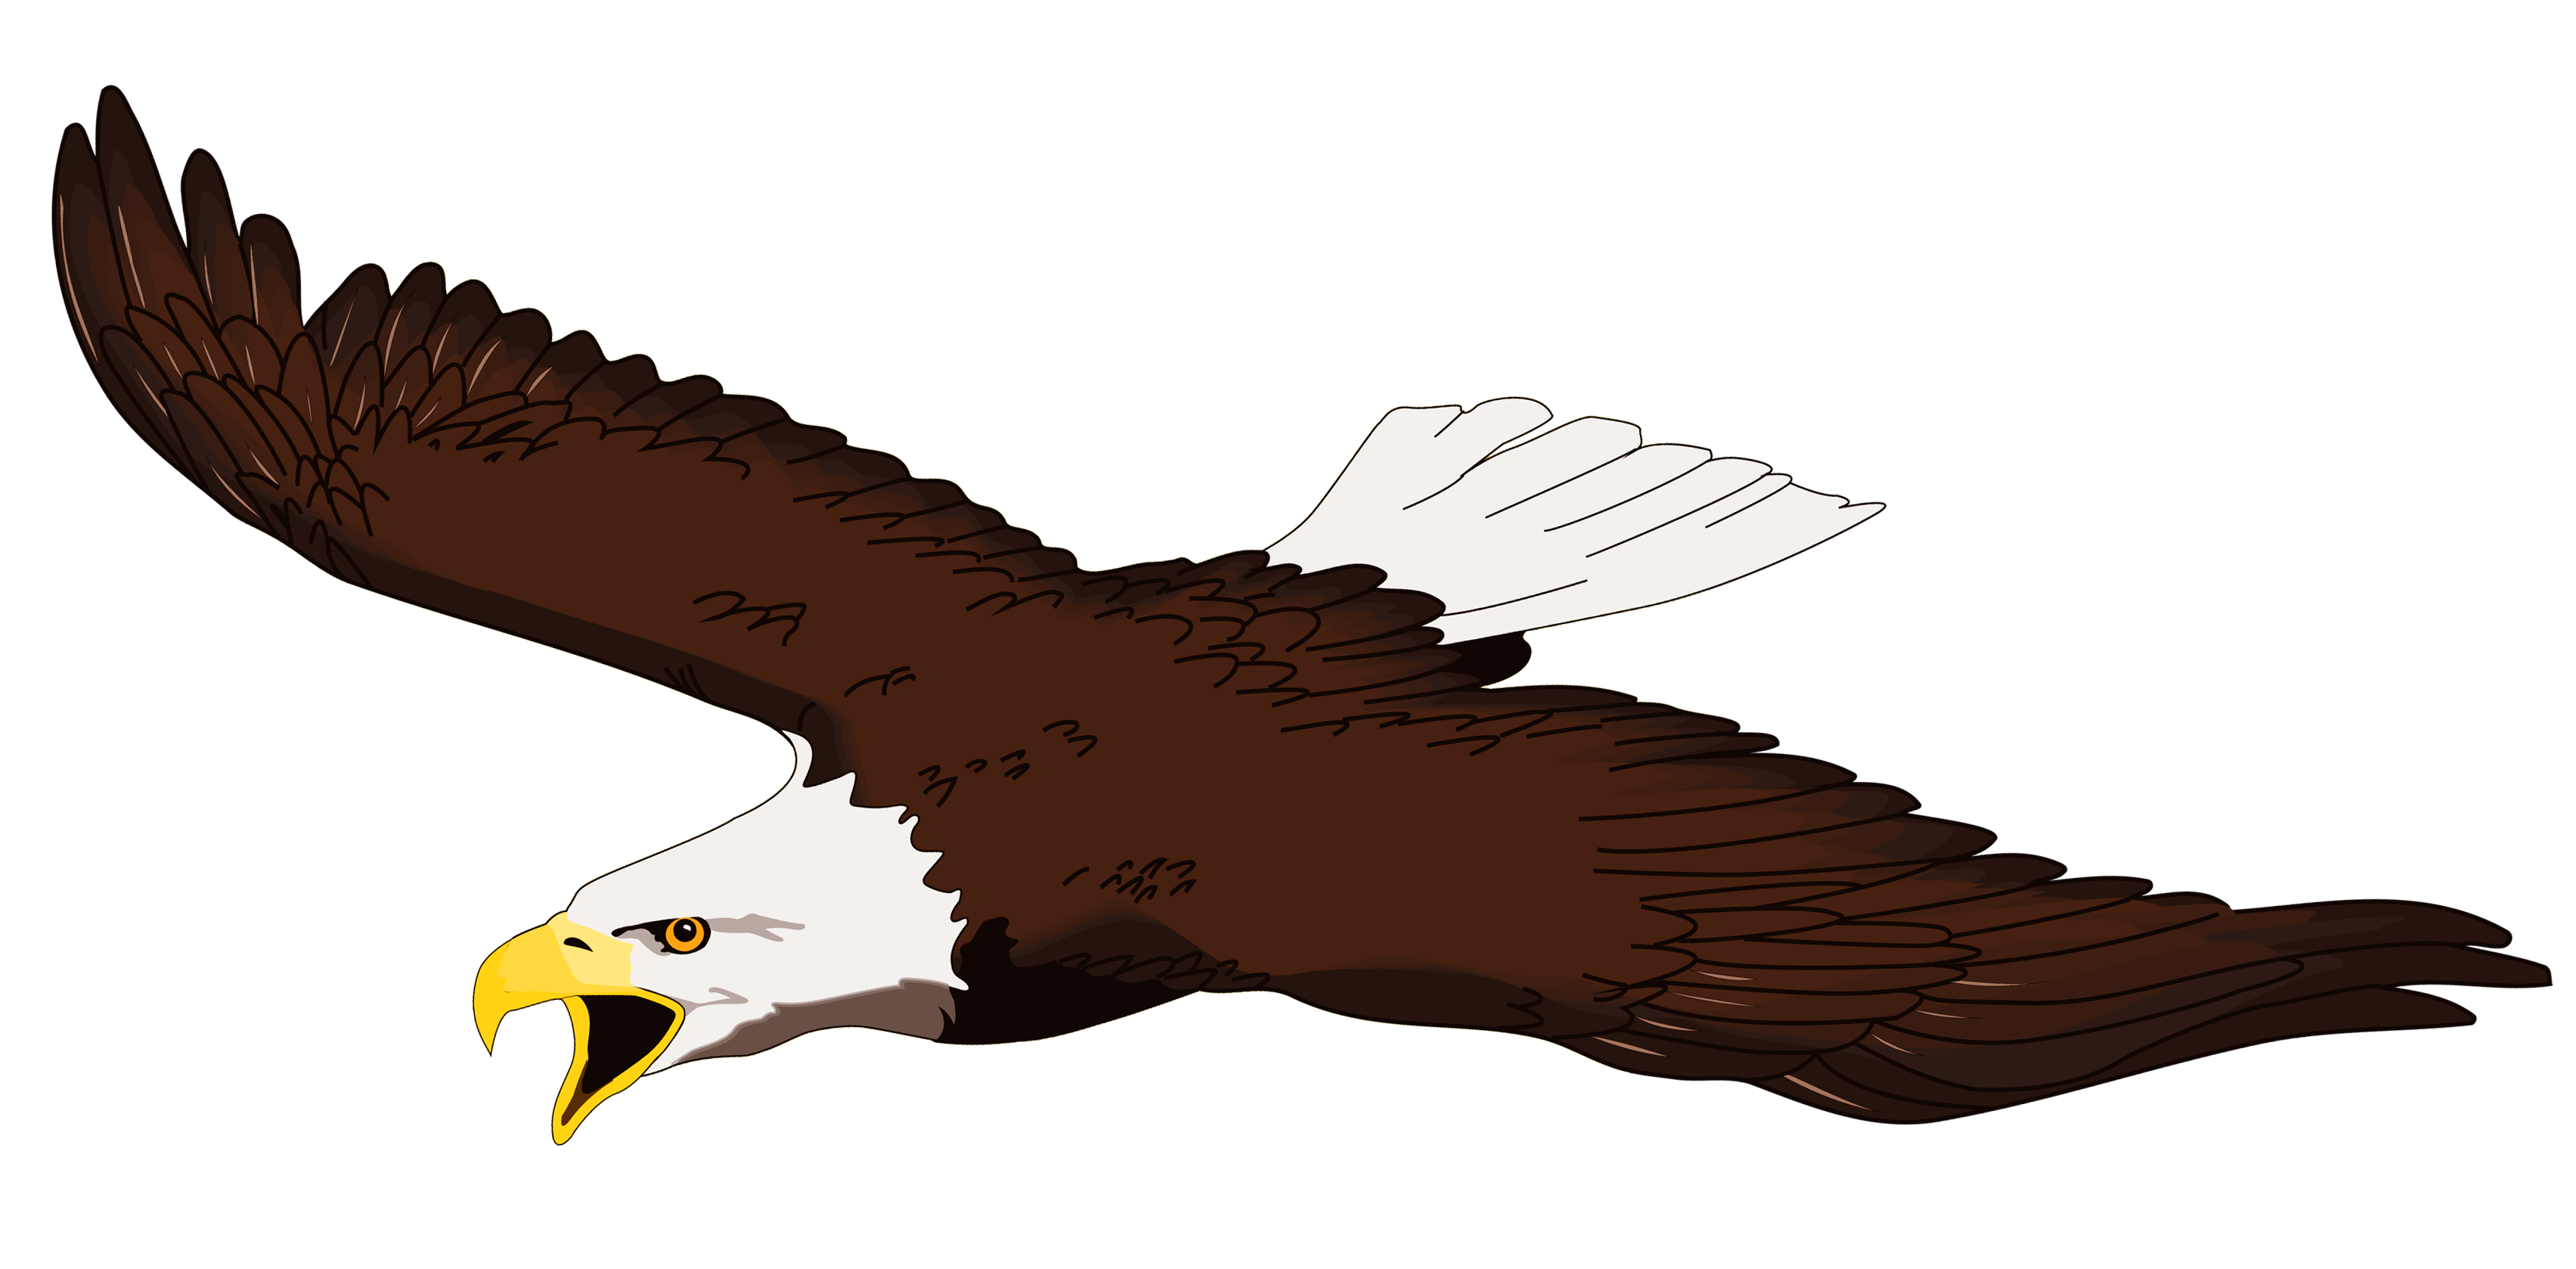 Eagle Feather Clipart At Getdrawings Com Free For Personal Use